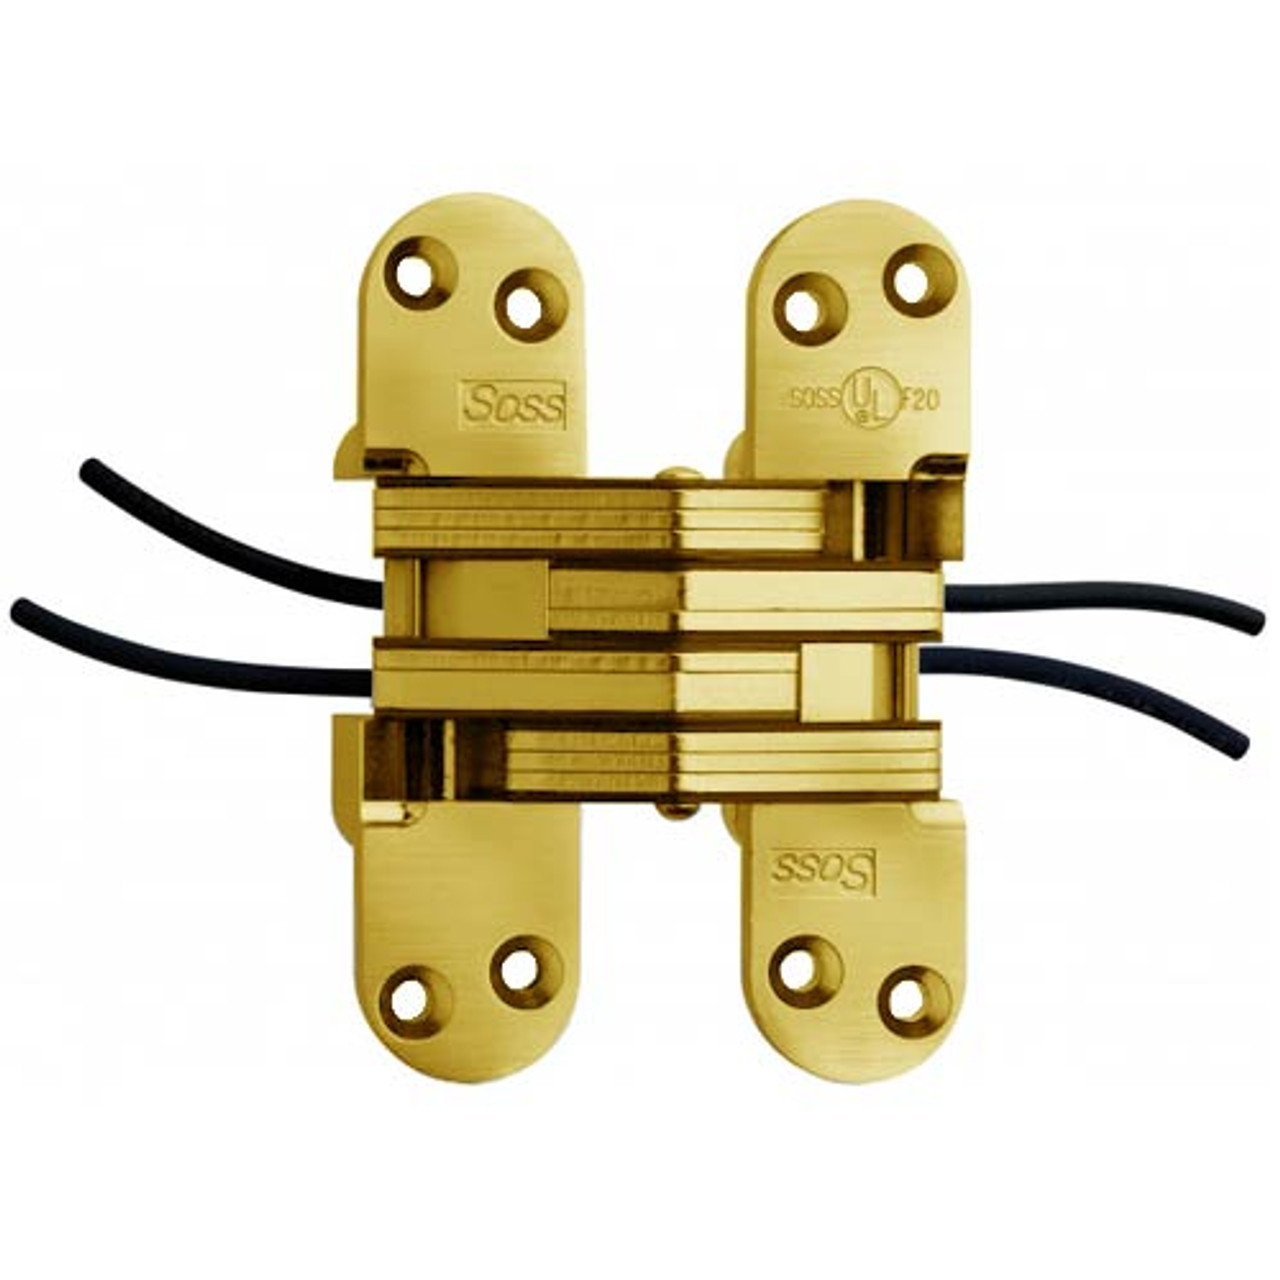 218PT1-US3 Soss Invisible Hinge in Bright Brass Finish